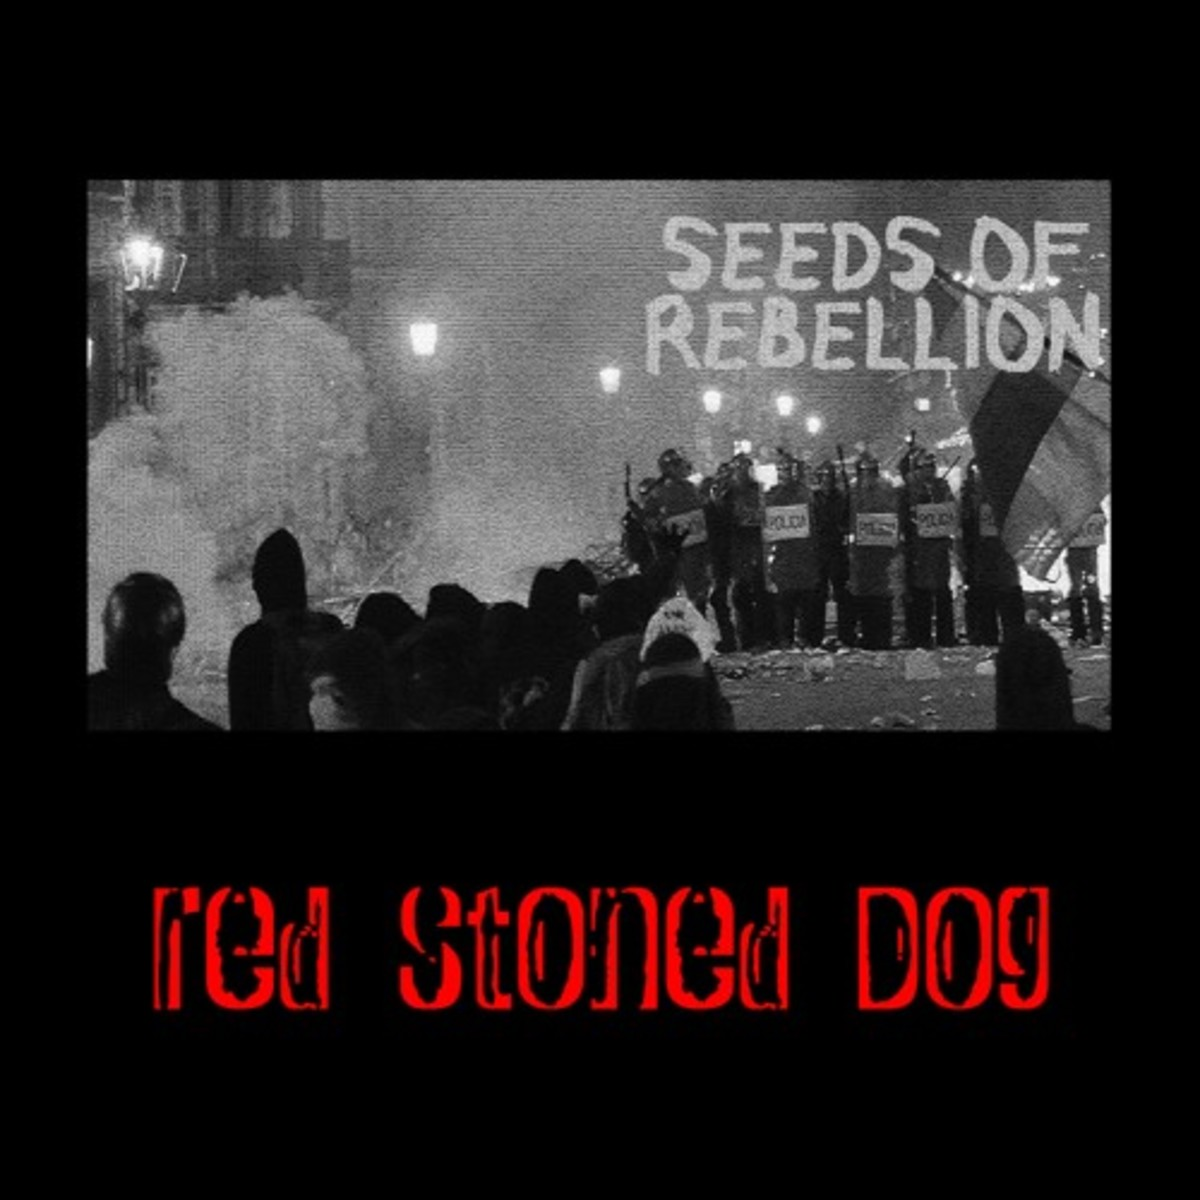 """Synth Single Review: Red Stoned Dog, """"Seeds of Rebellion"""""""